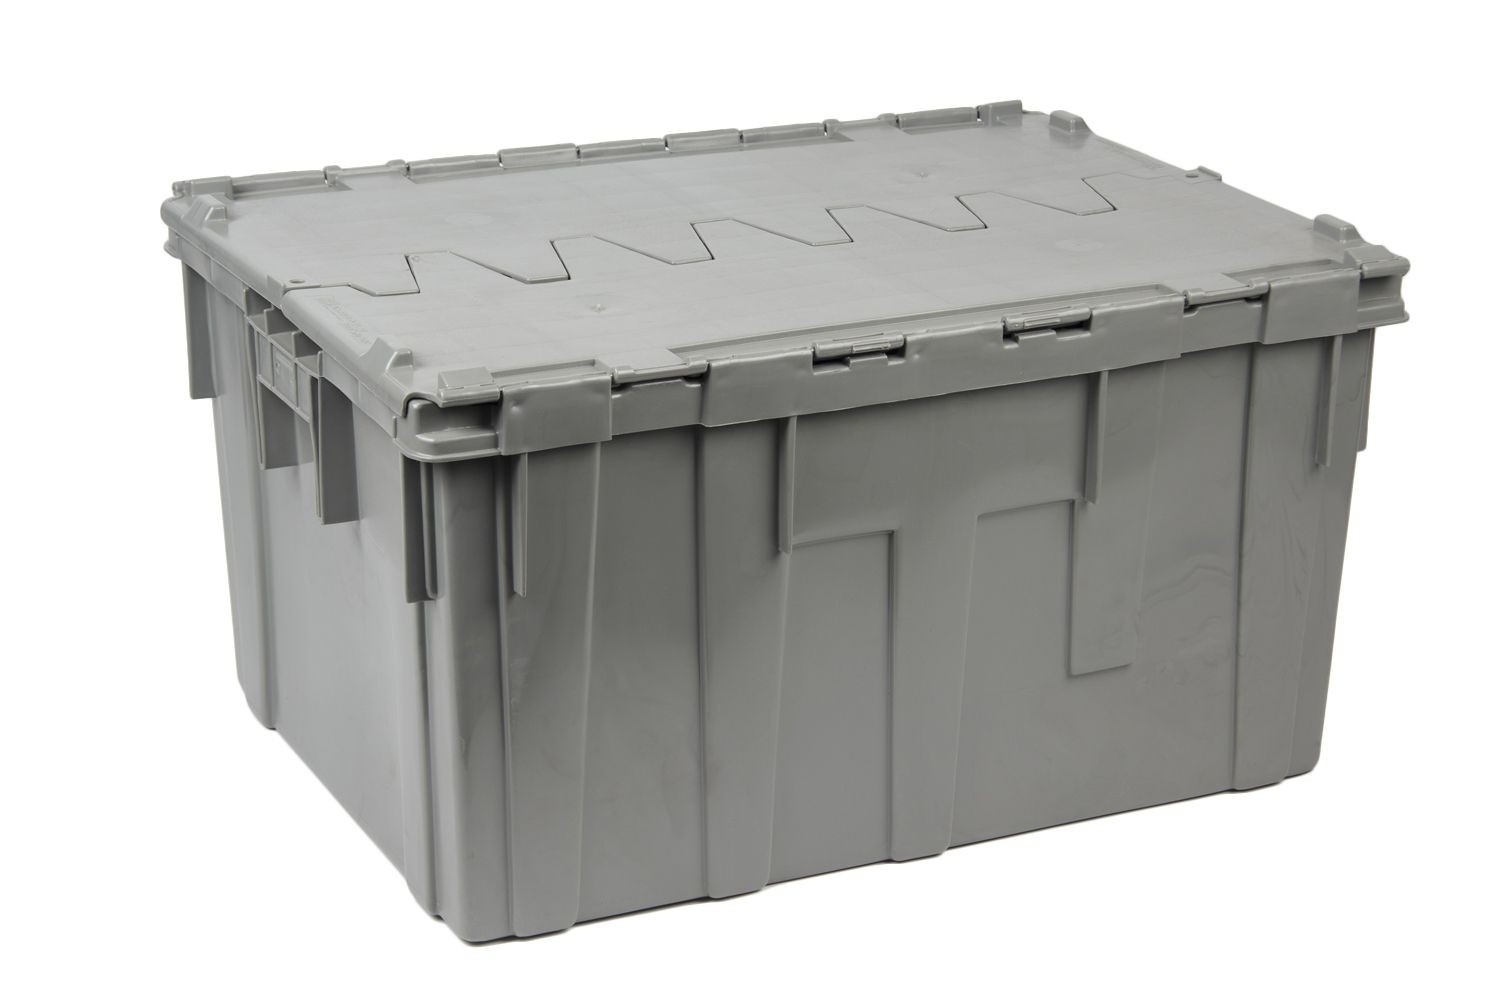 "Bon Chef 812001P Stackable Gray Reinforced Plastic Chafer Box with Locking Lid, 28"" x 21"" x 15"""